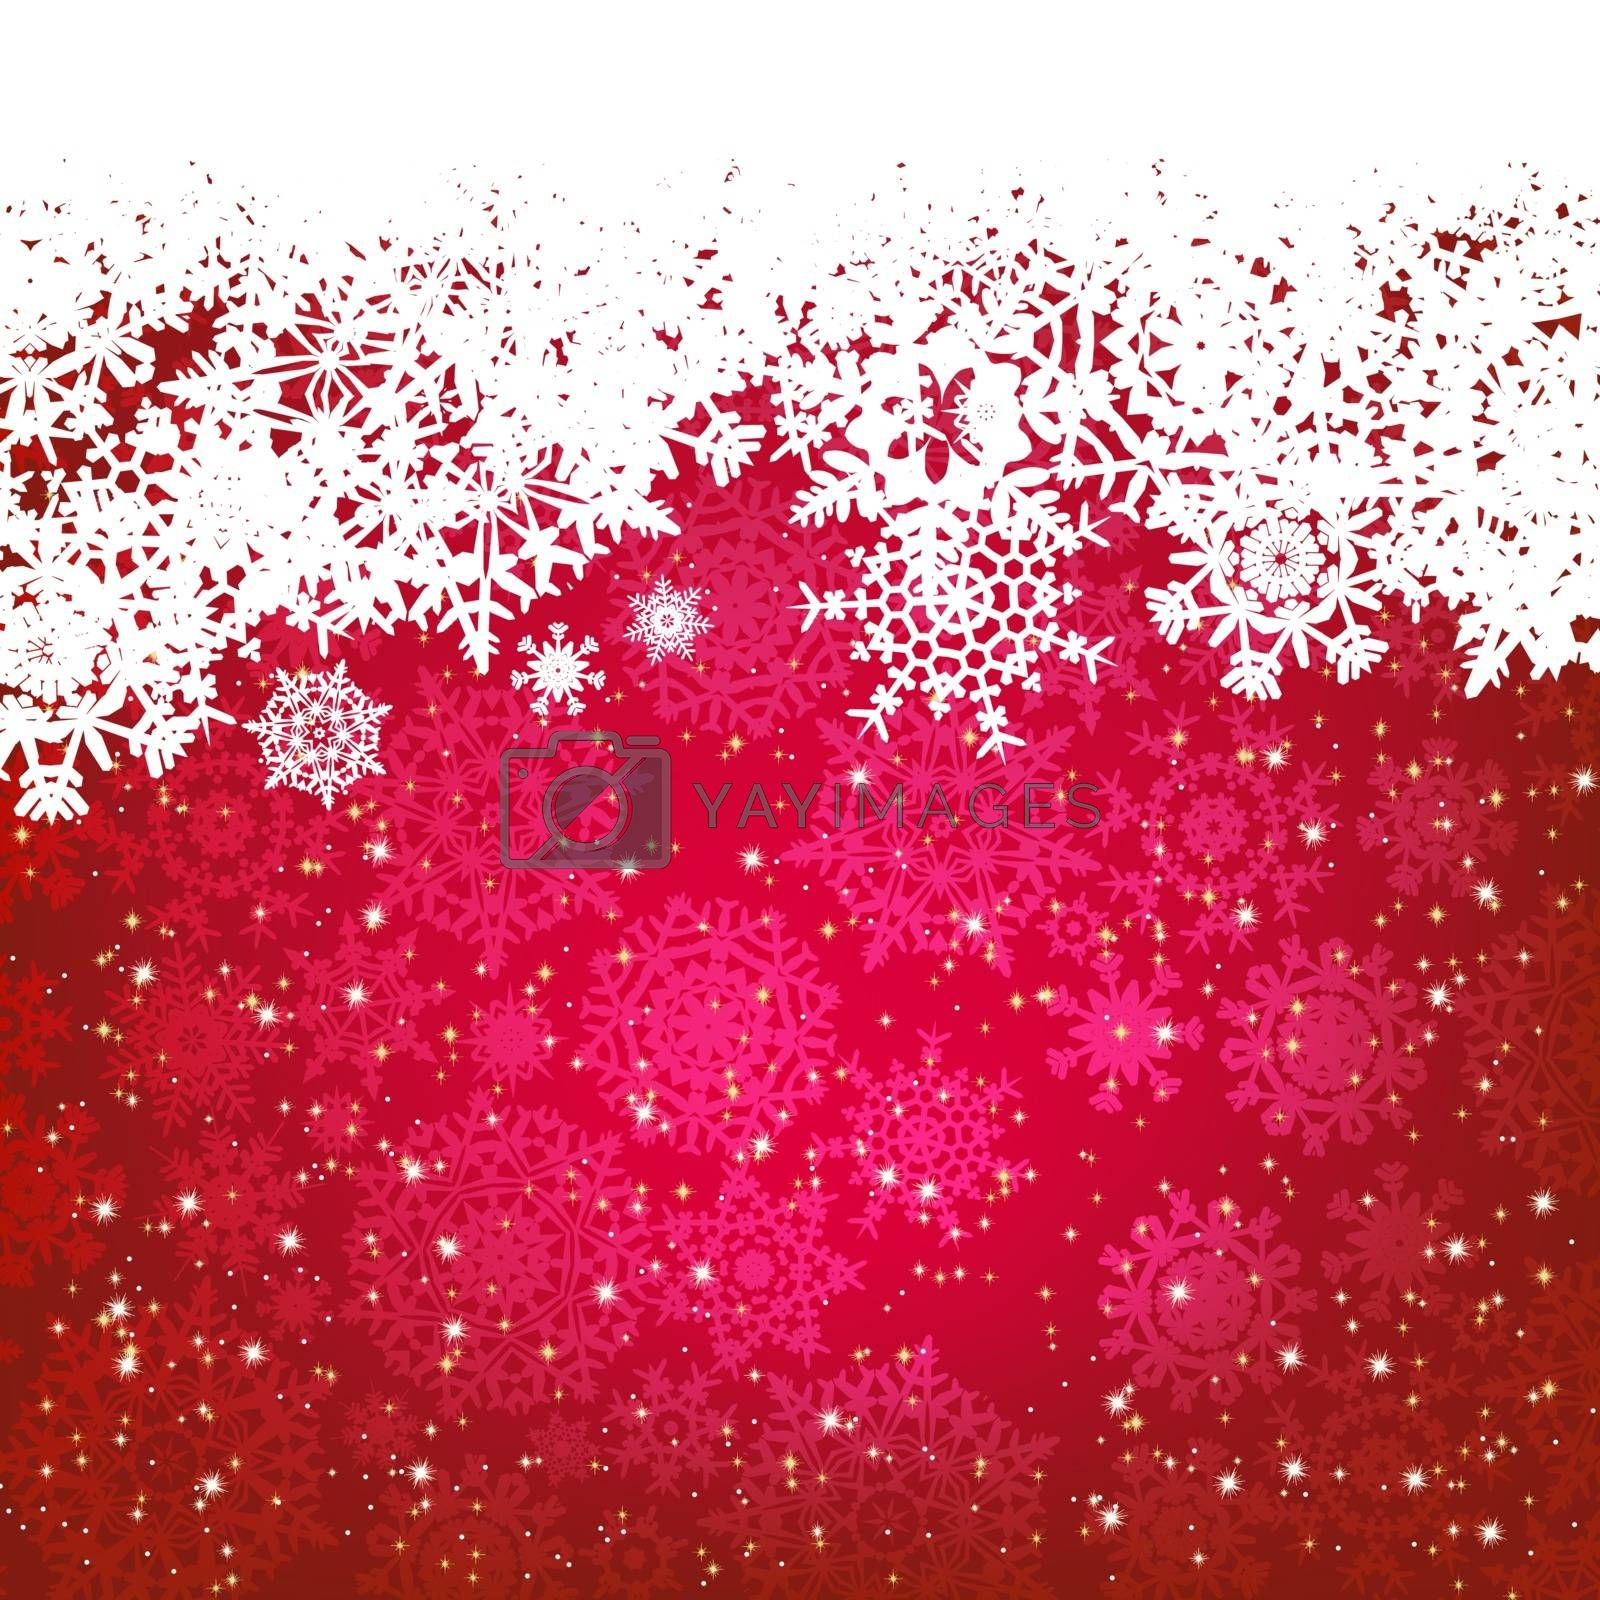 Royalty free image of Beautiful red happy Christmas card. EPS 8 by Petrov_Vladimir